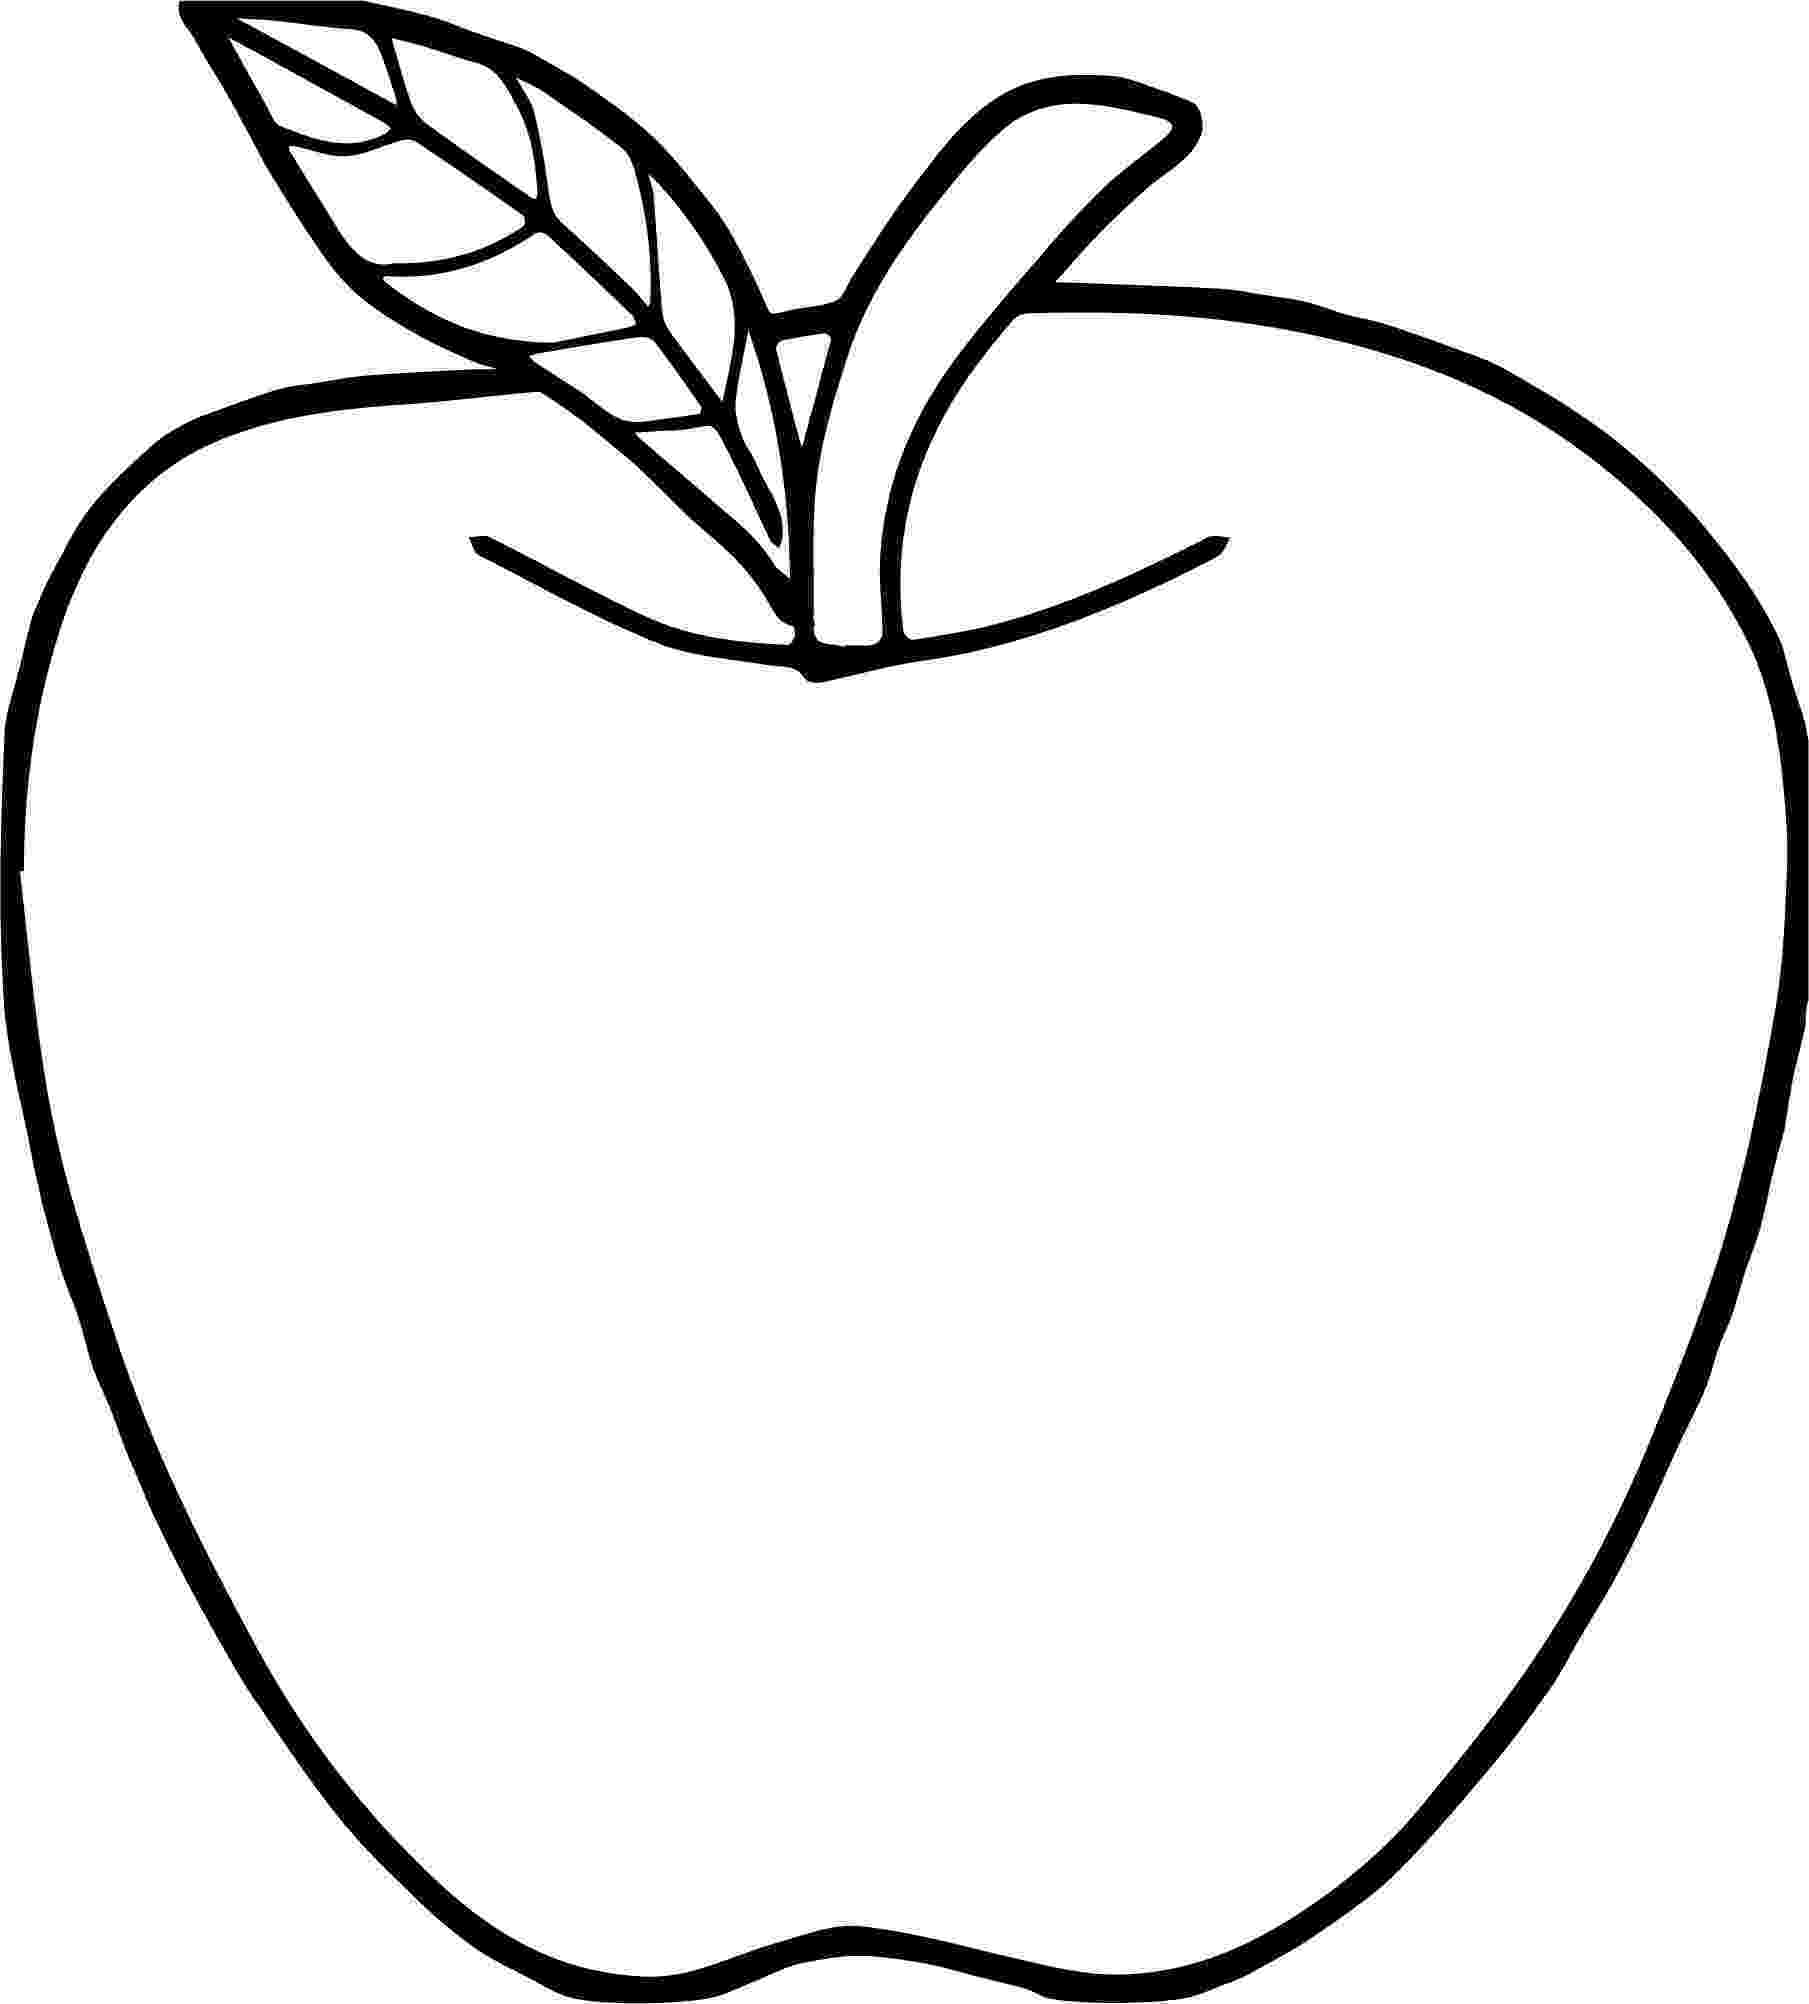 apple coloring images apple coloring page free printable coloring pages images coloring apple